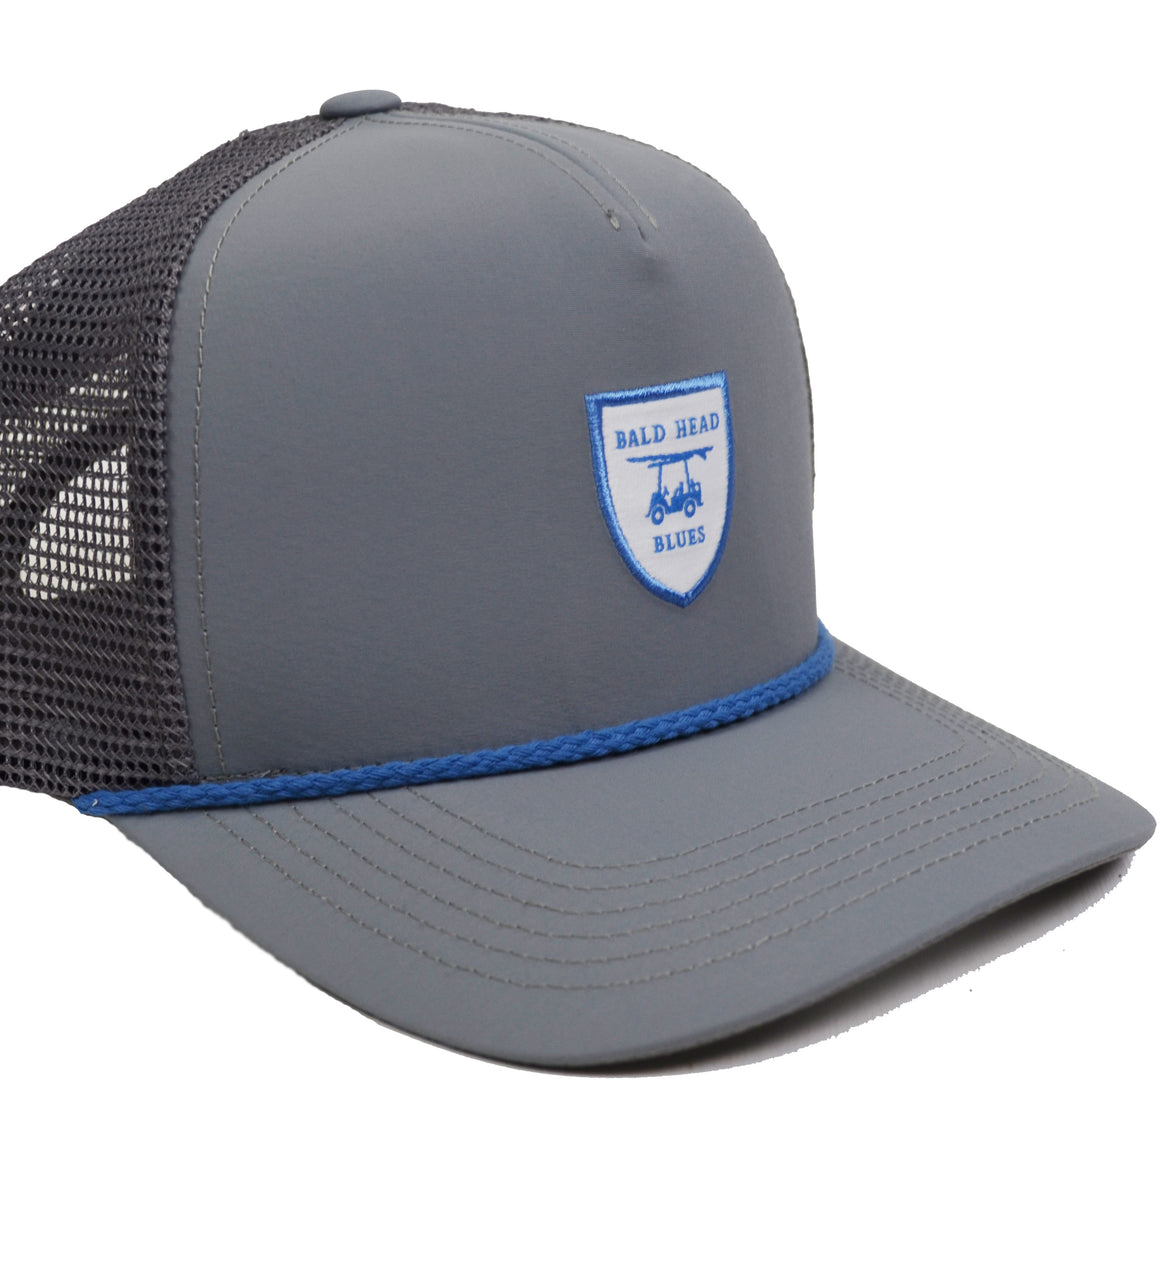 NEW Performance Trucker Hat - Grey